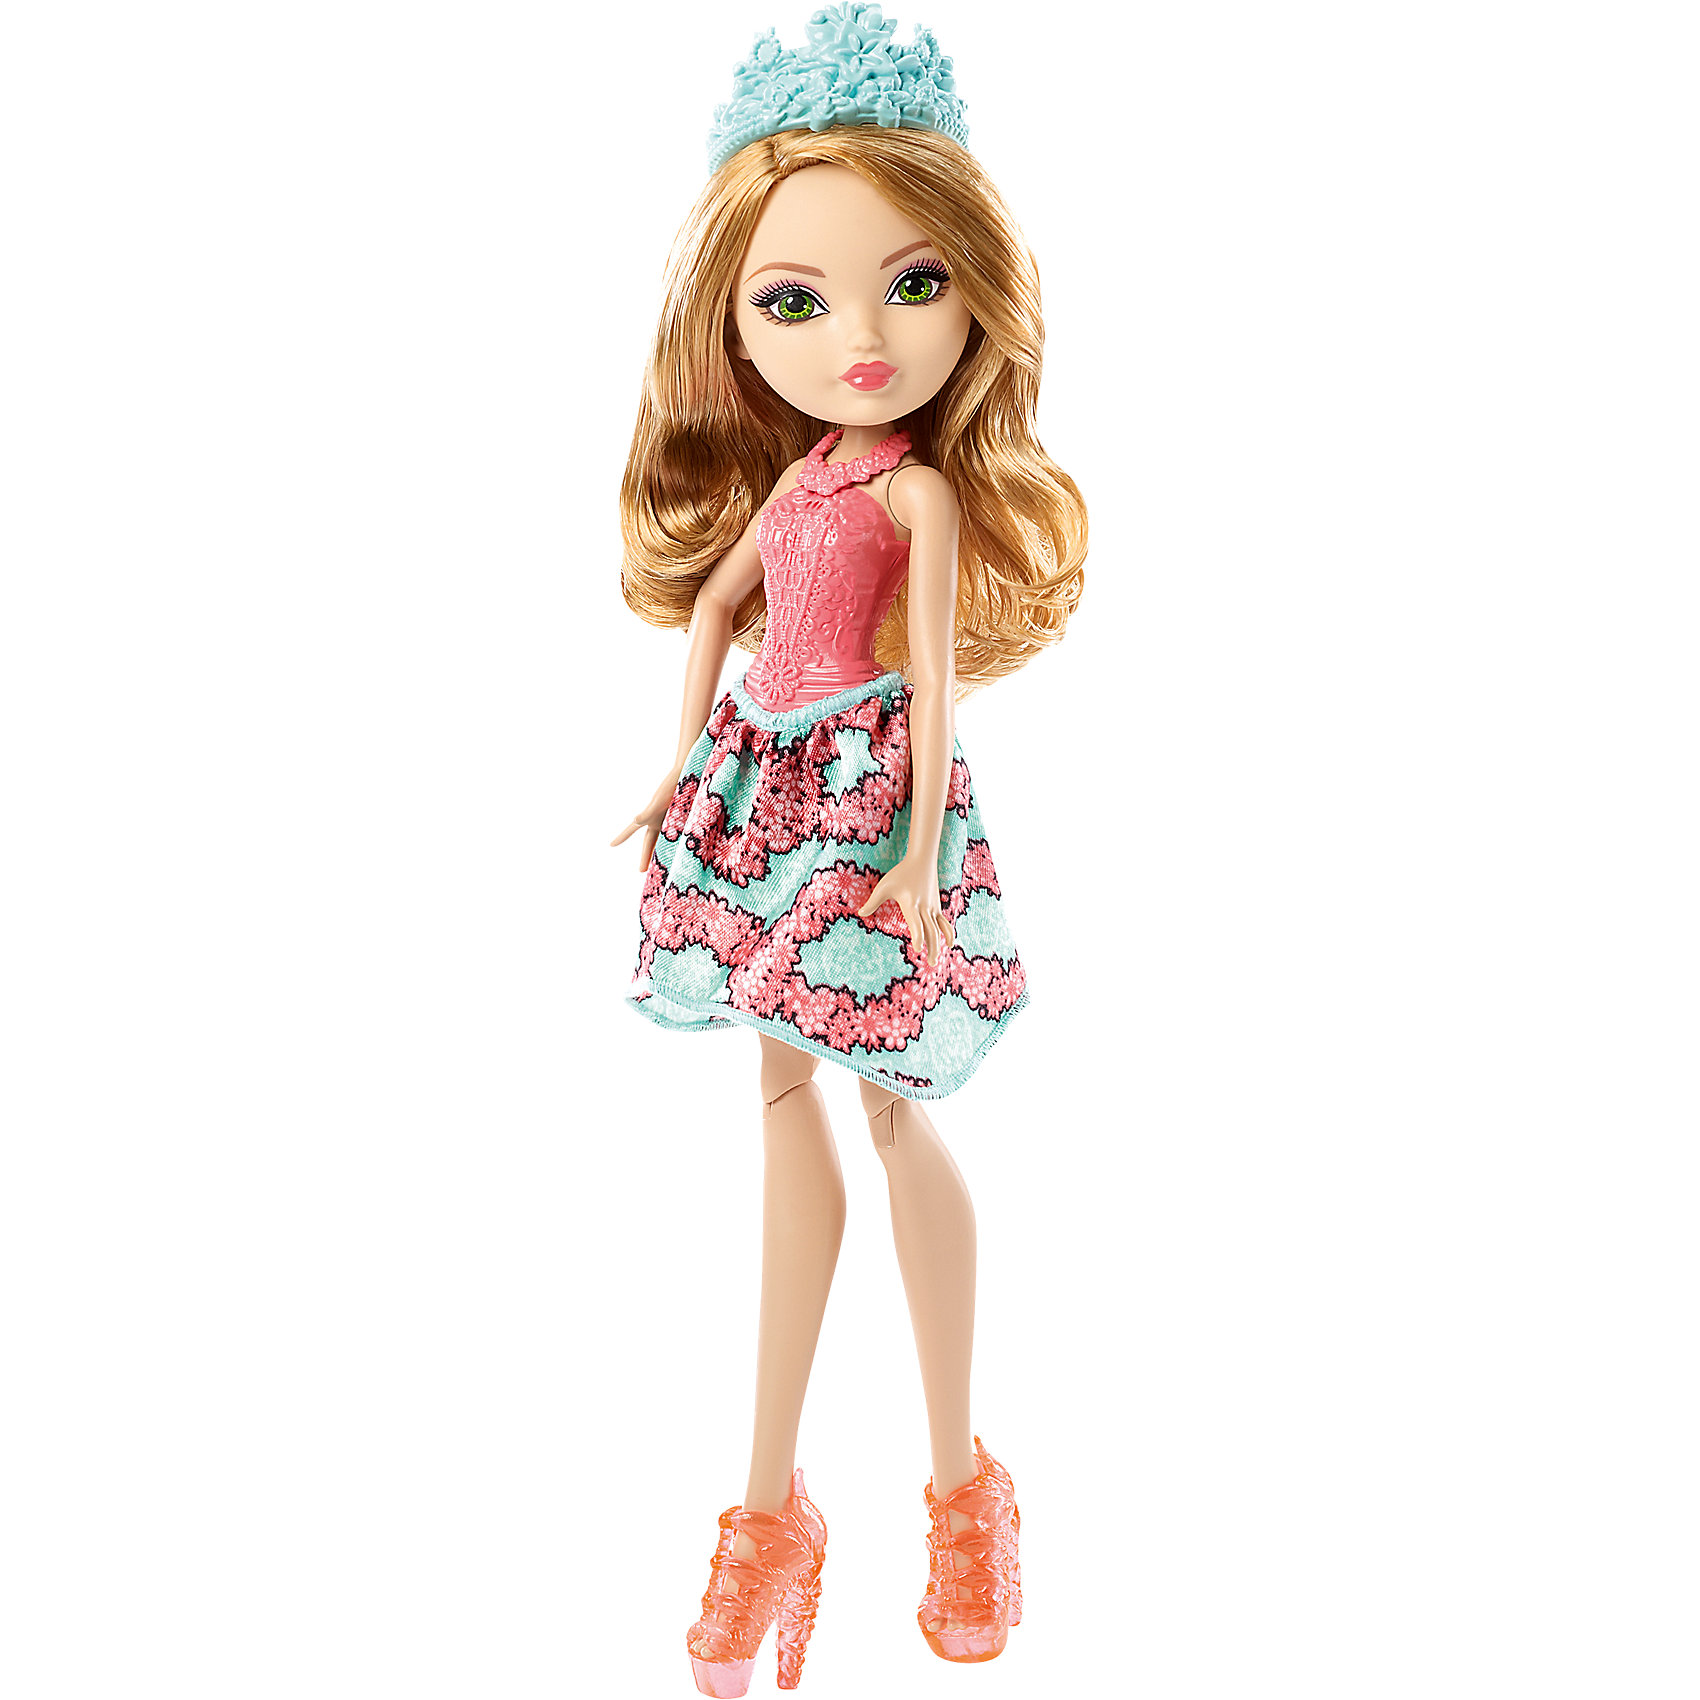 Mattel Кукла Эшлин Элла,  Ever After High mattel mattel кукла ever after high наследники и отступники банни бланк